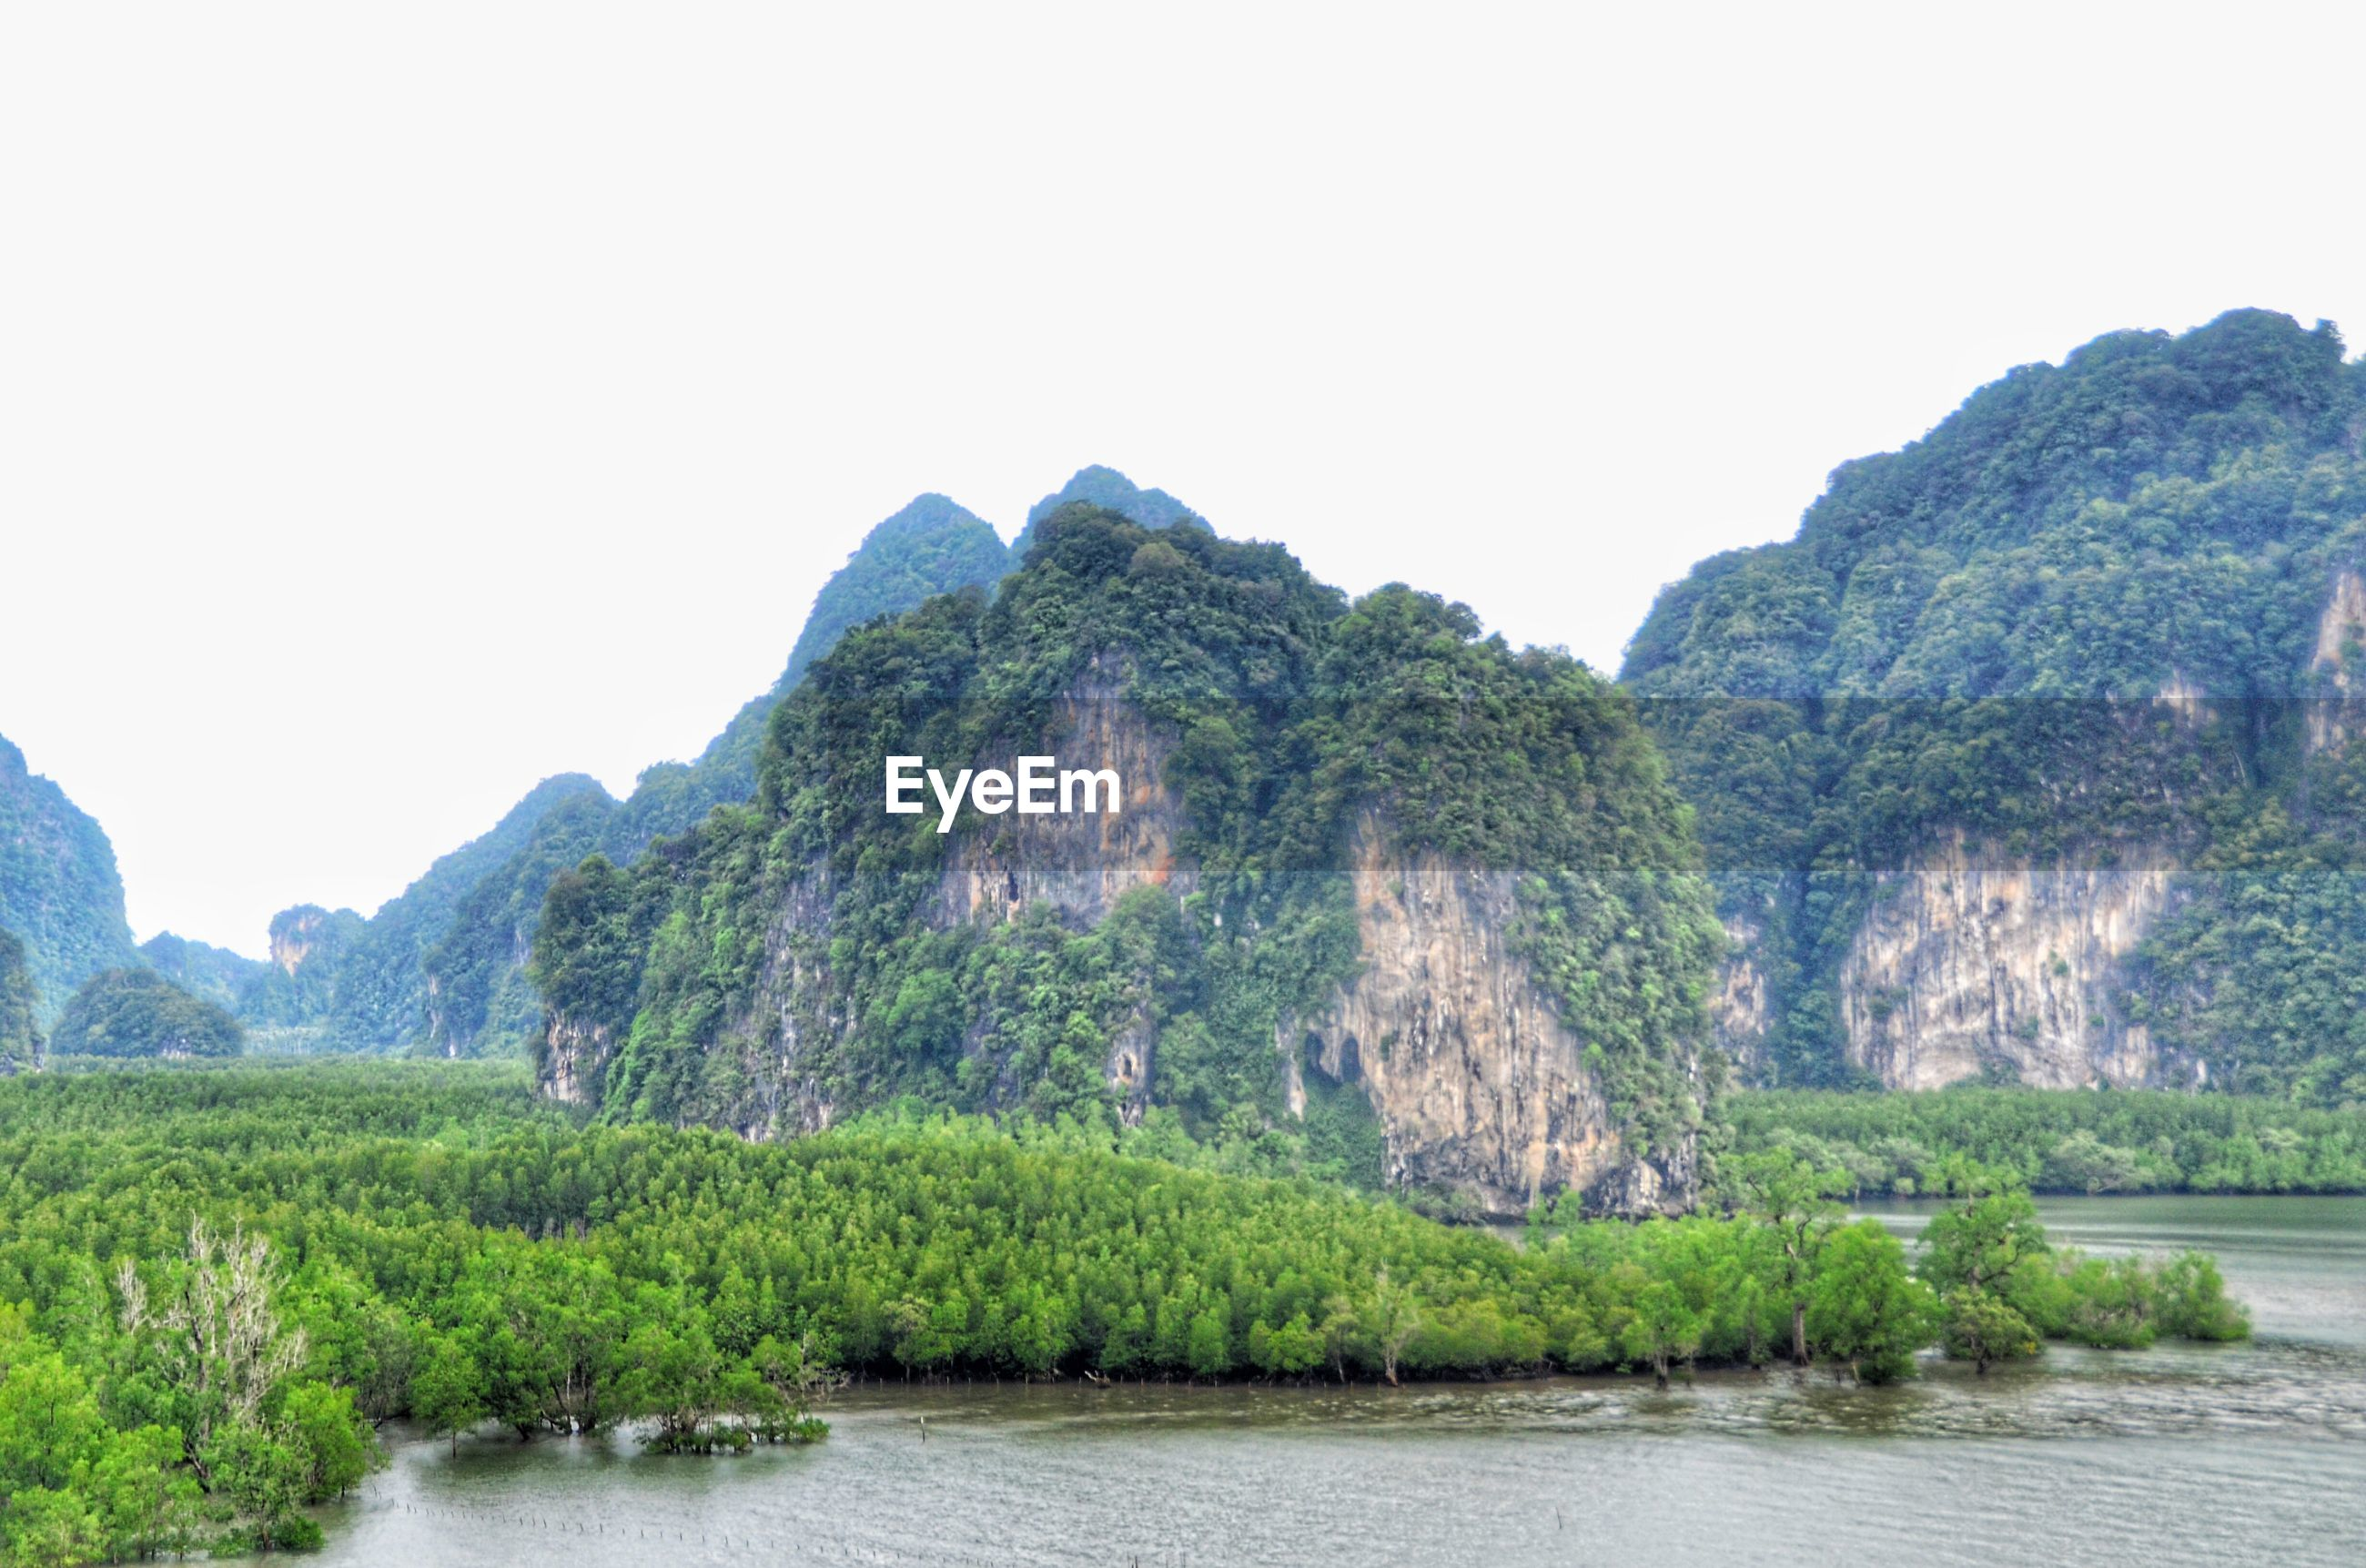 PANORAMIC SHOT OF TREES ON LANDSCAPE AGAINST CLEAR SKY